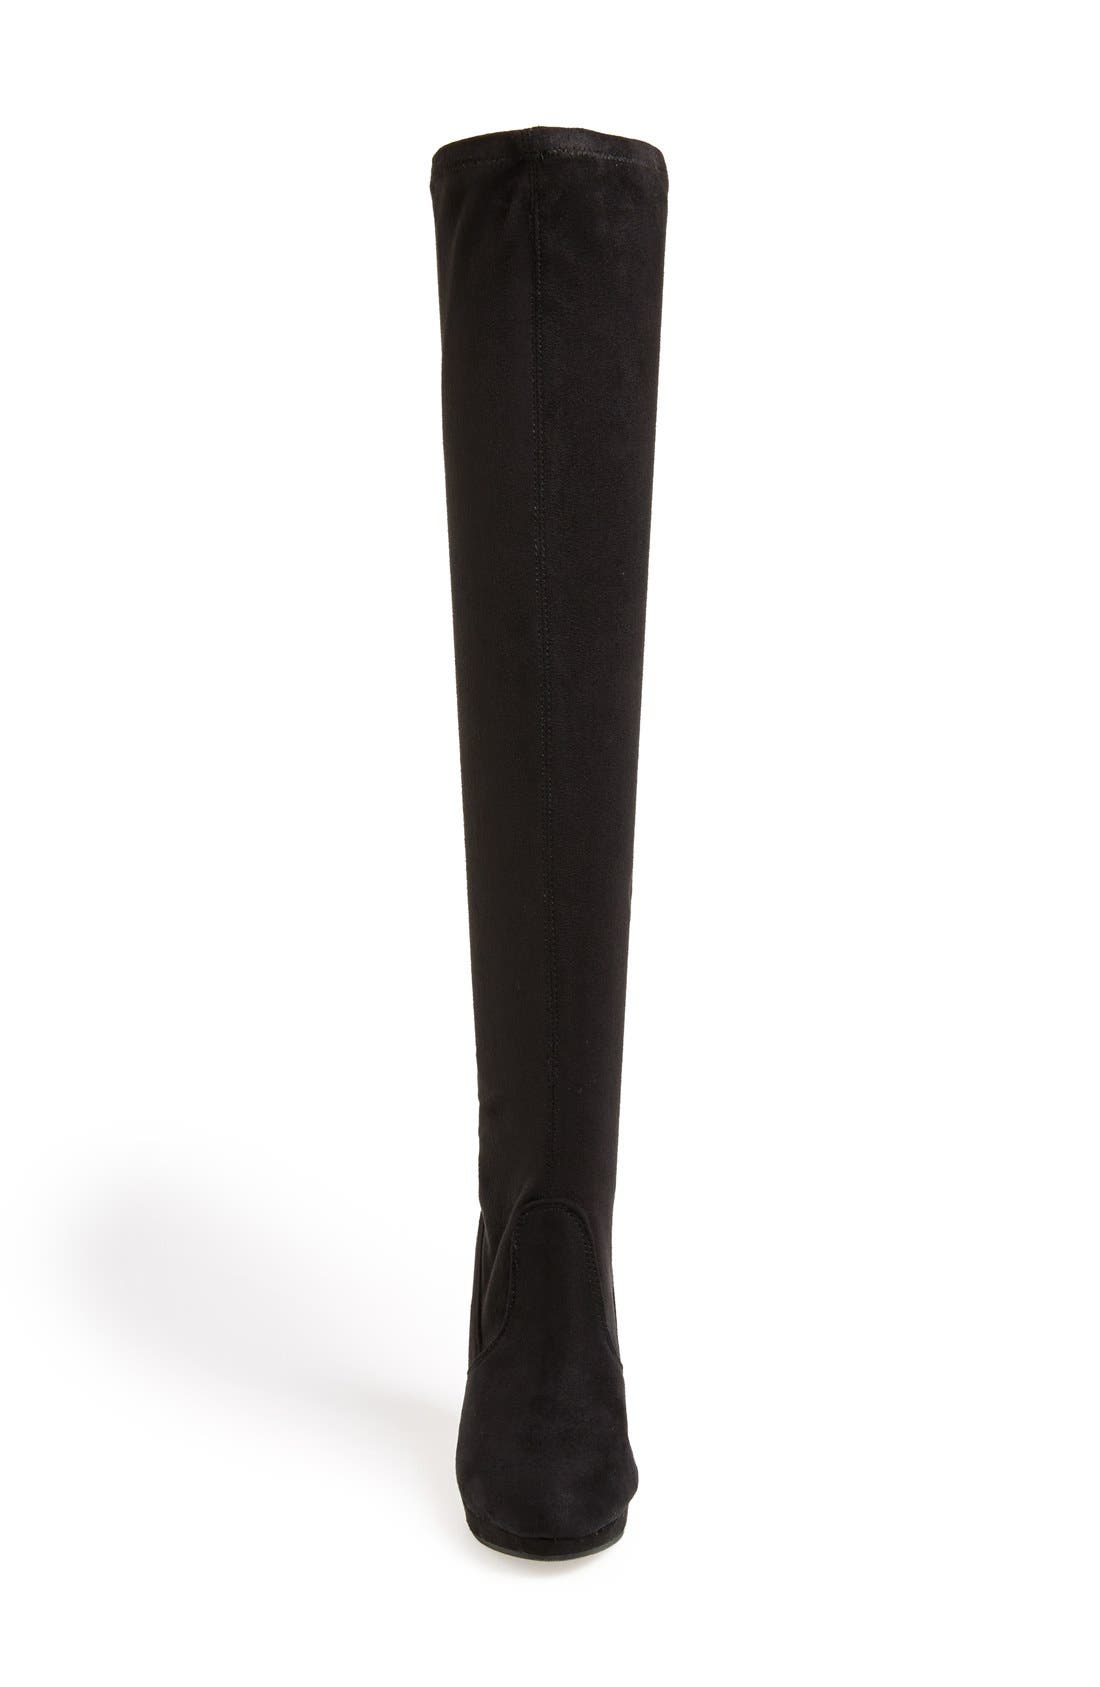 REPORT 'Nadya' Over The Knee Boot,                             Alternate thumbnail 3, color,                             001